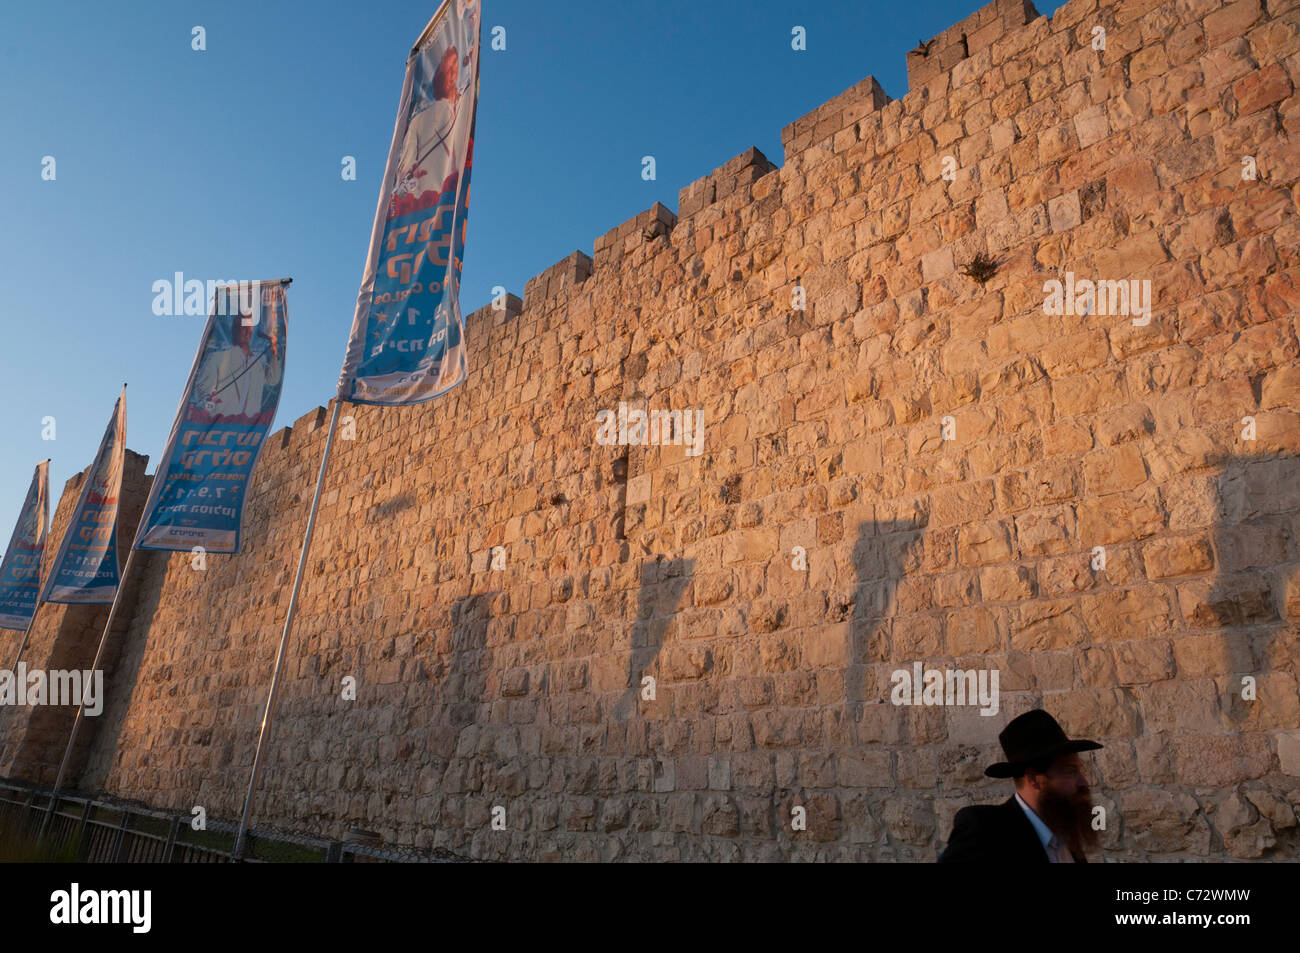 City walls at sunset with flags and orthodox jew. Jaffa Gate. Jerusalem Old City. israel - Stock Image